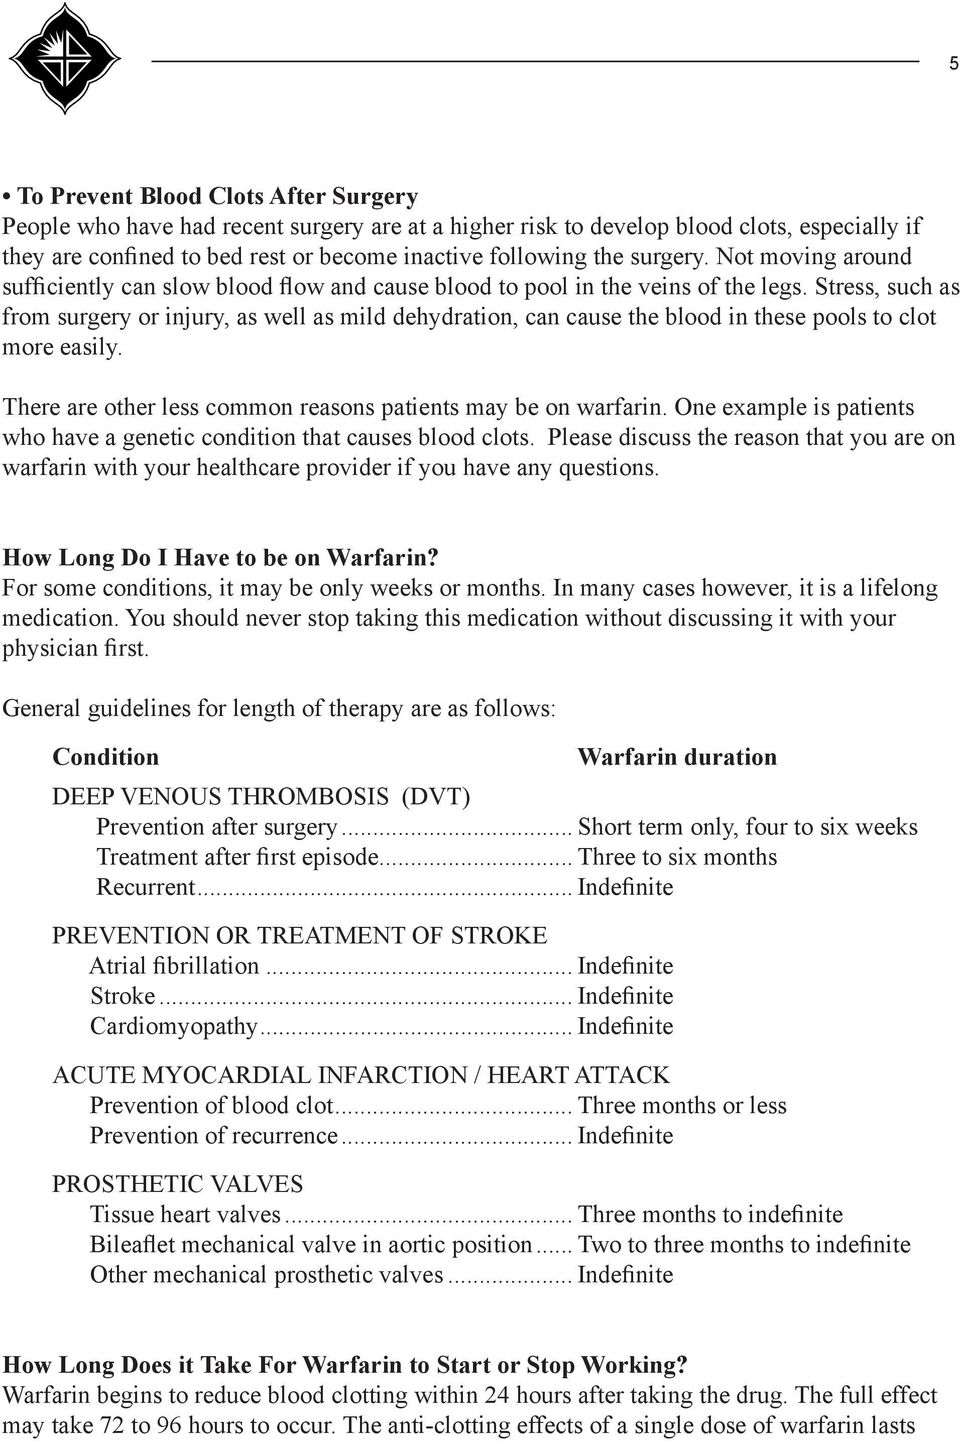 How to Live with Warfarin How to Live with Warfarin new picture